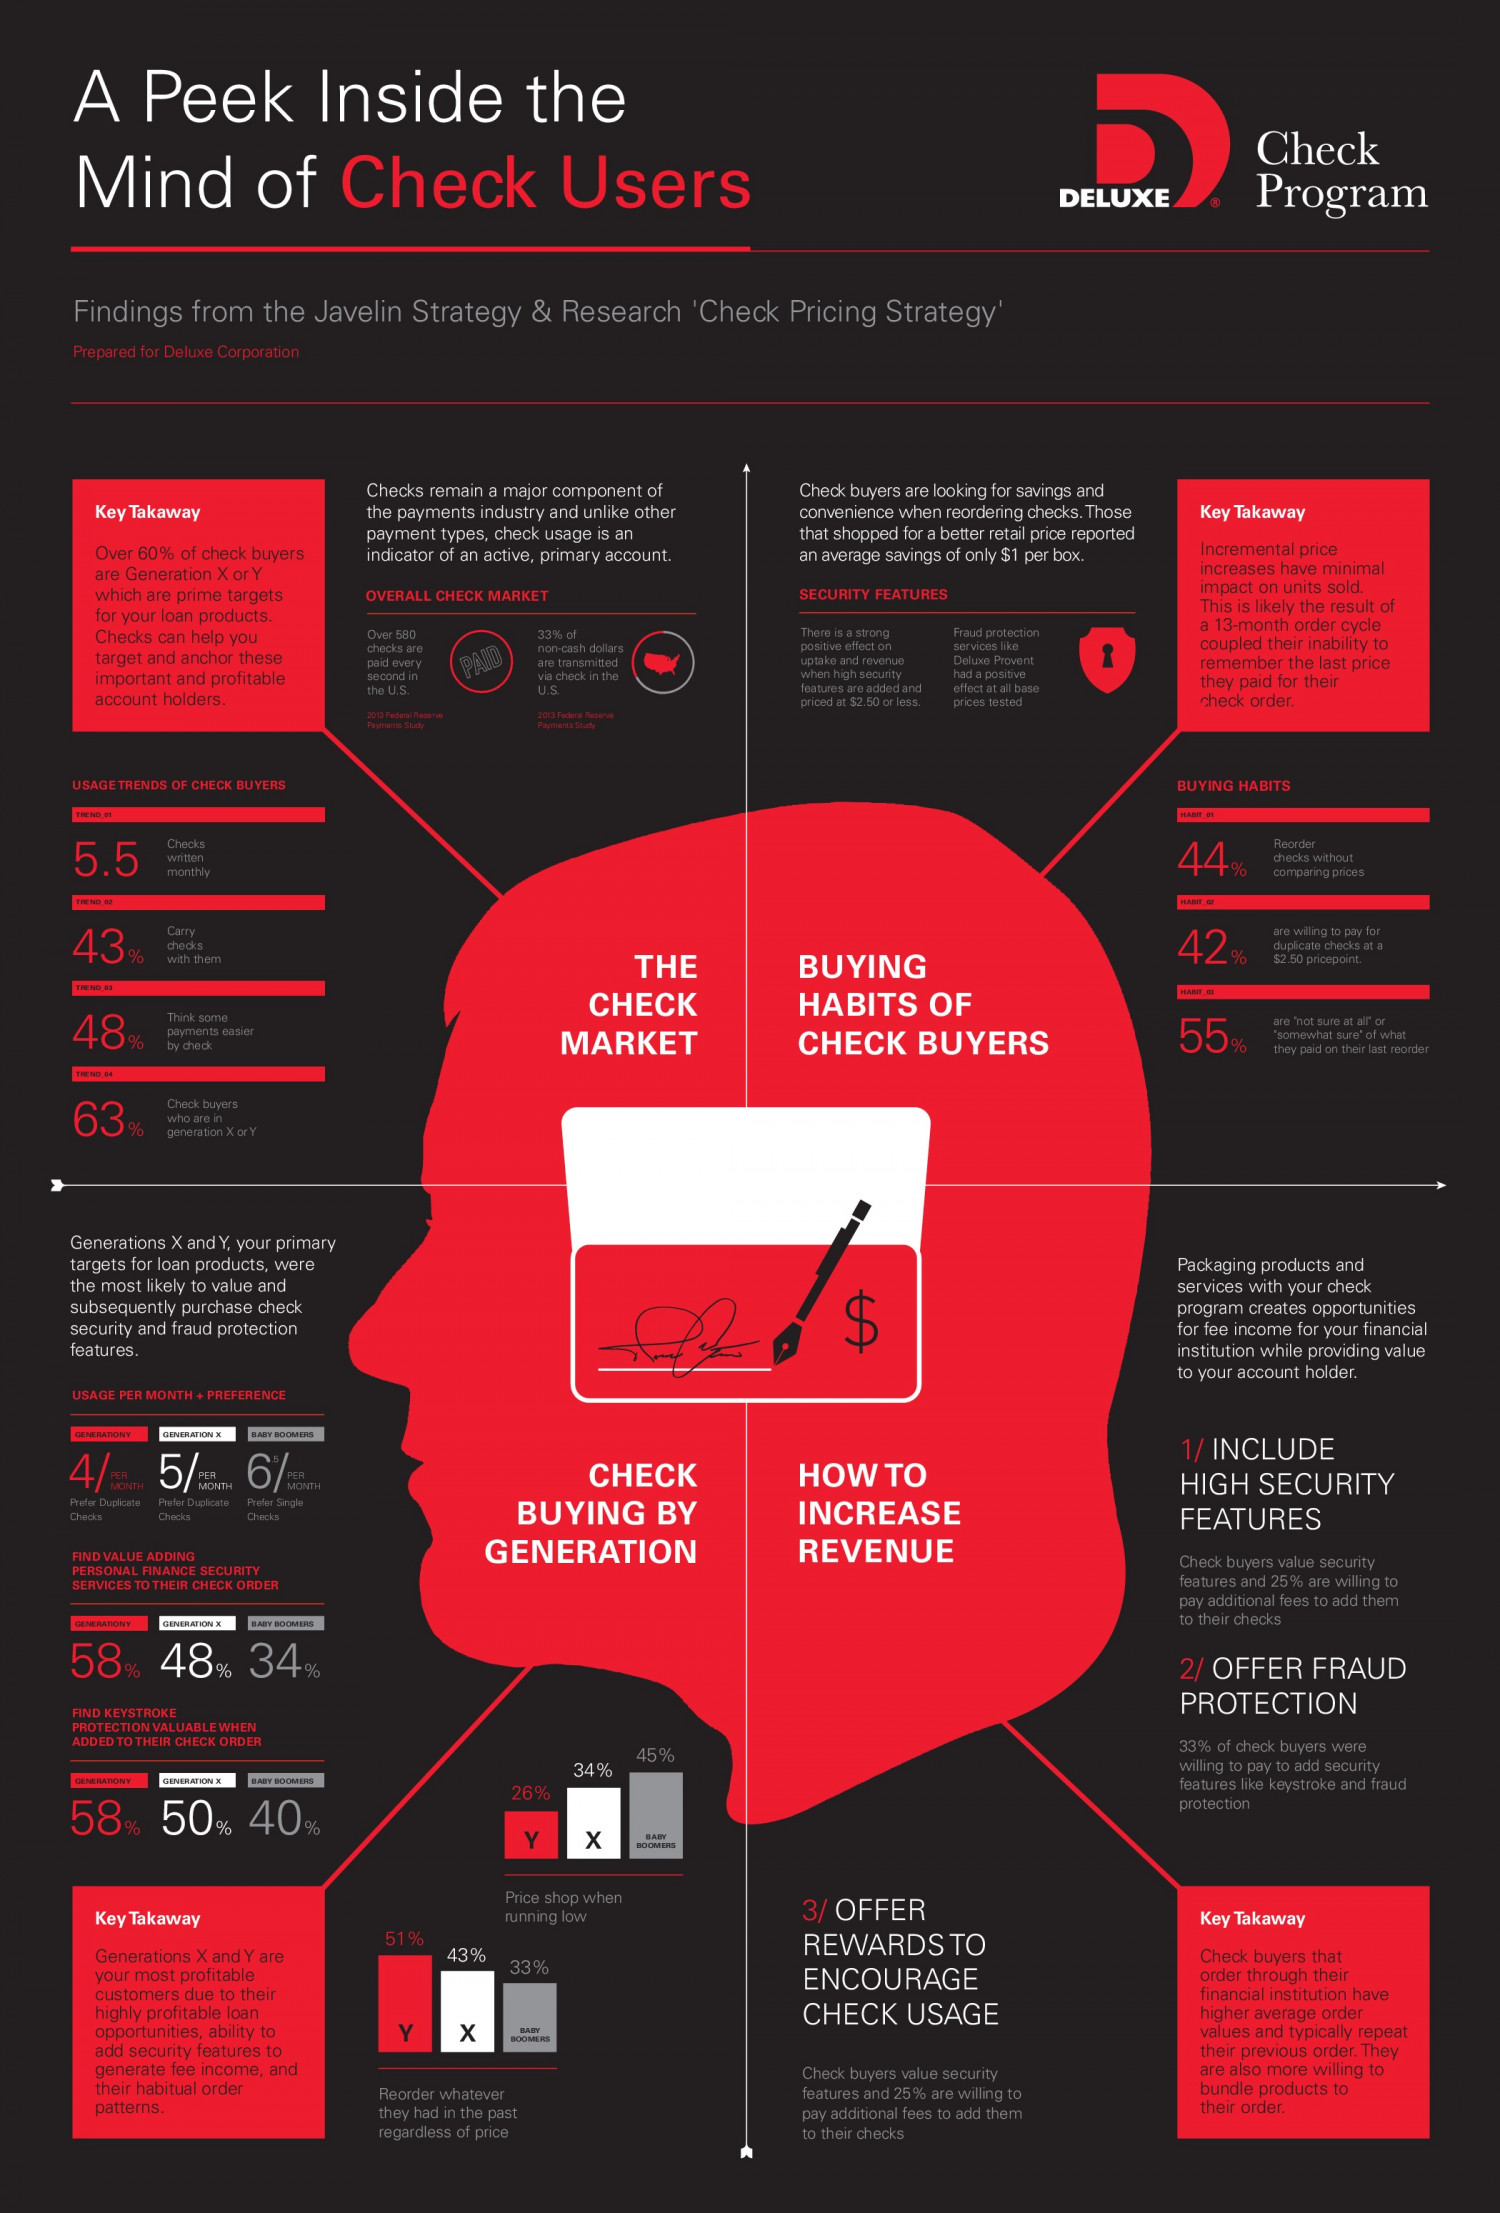 A Peek Inside the Mind of Check Users Infographic